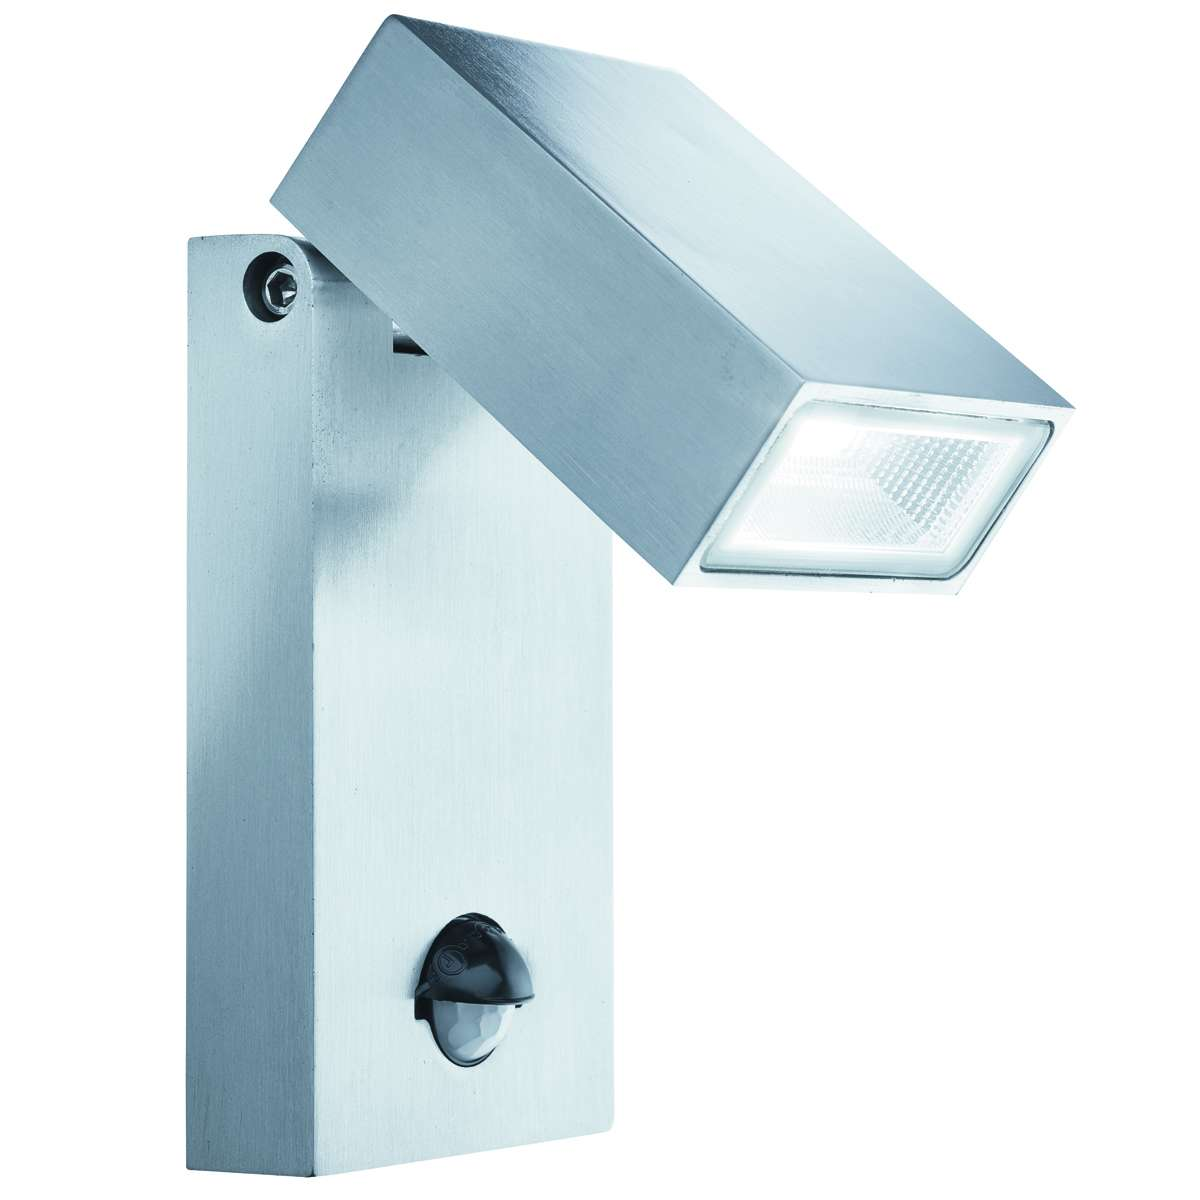 StainlessSteel Ip44 Led Outdoor Wall Light Motion Sensor